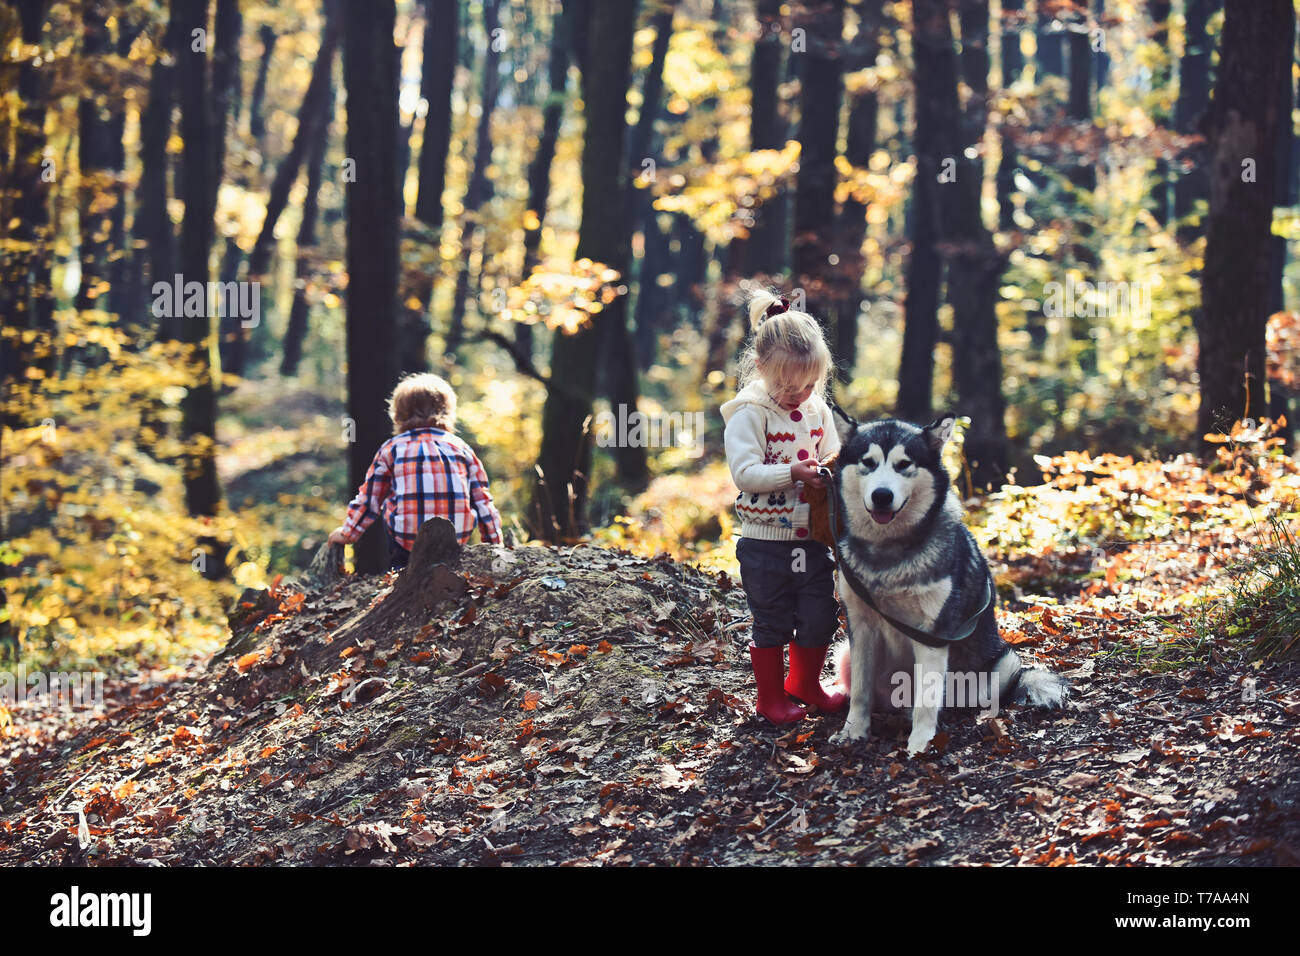 Sad little girl and boy with big dog in forest in autumn - Stock Image